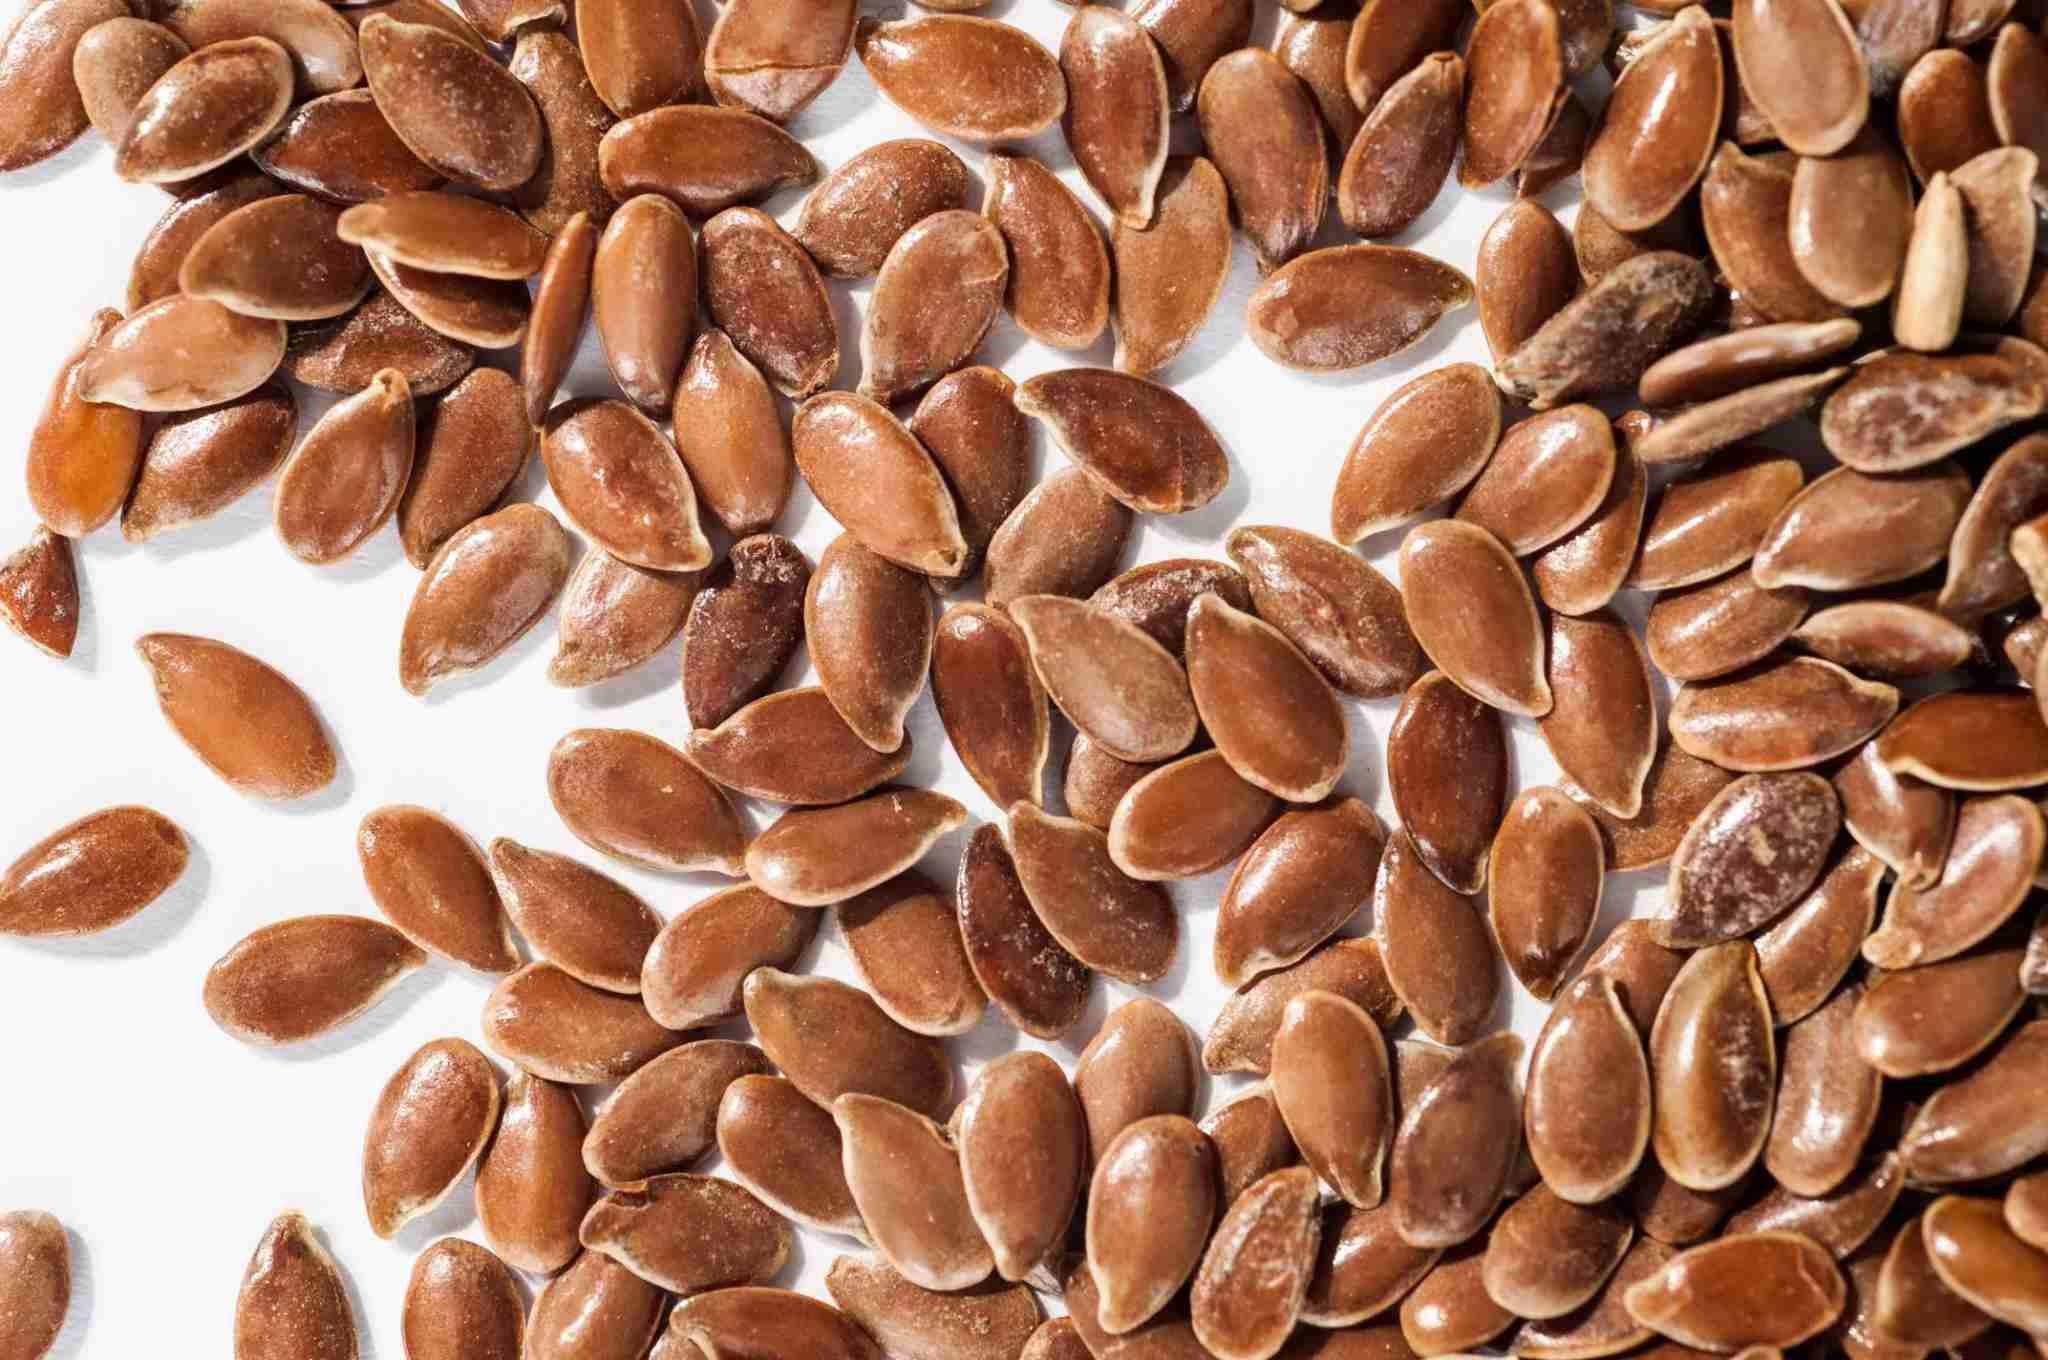 Bed bugs resemble flax seeds, but can grow to double their size. Image courtesy of Wikimedia Commons.